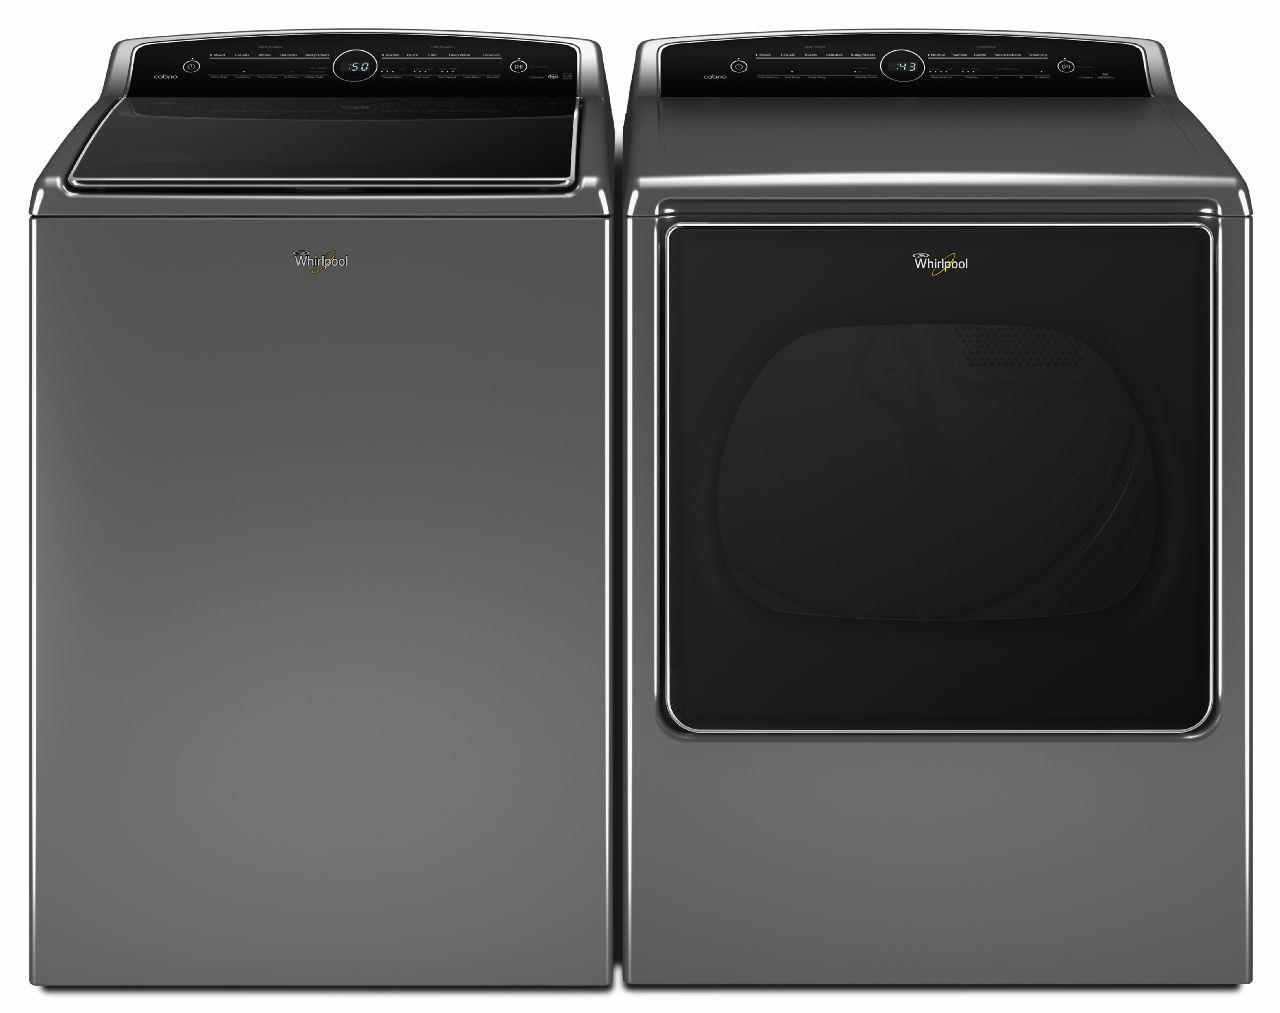 Whirlpool Washer and Dryer Sets Top-Load Washer and Front-Load Elec Dryer - Item Number: WTW8500DC+WED8500DC